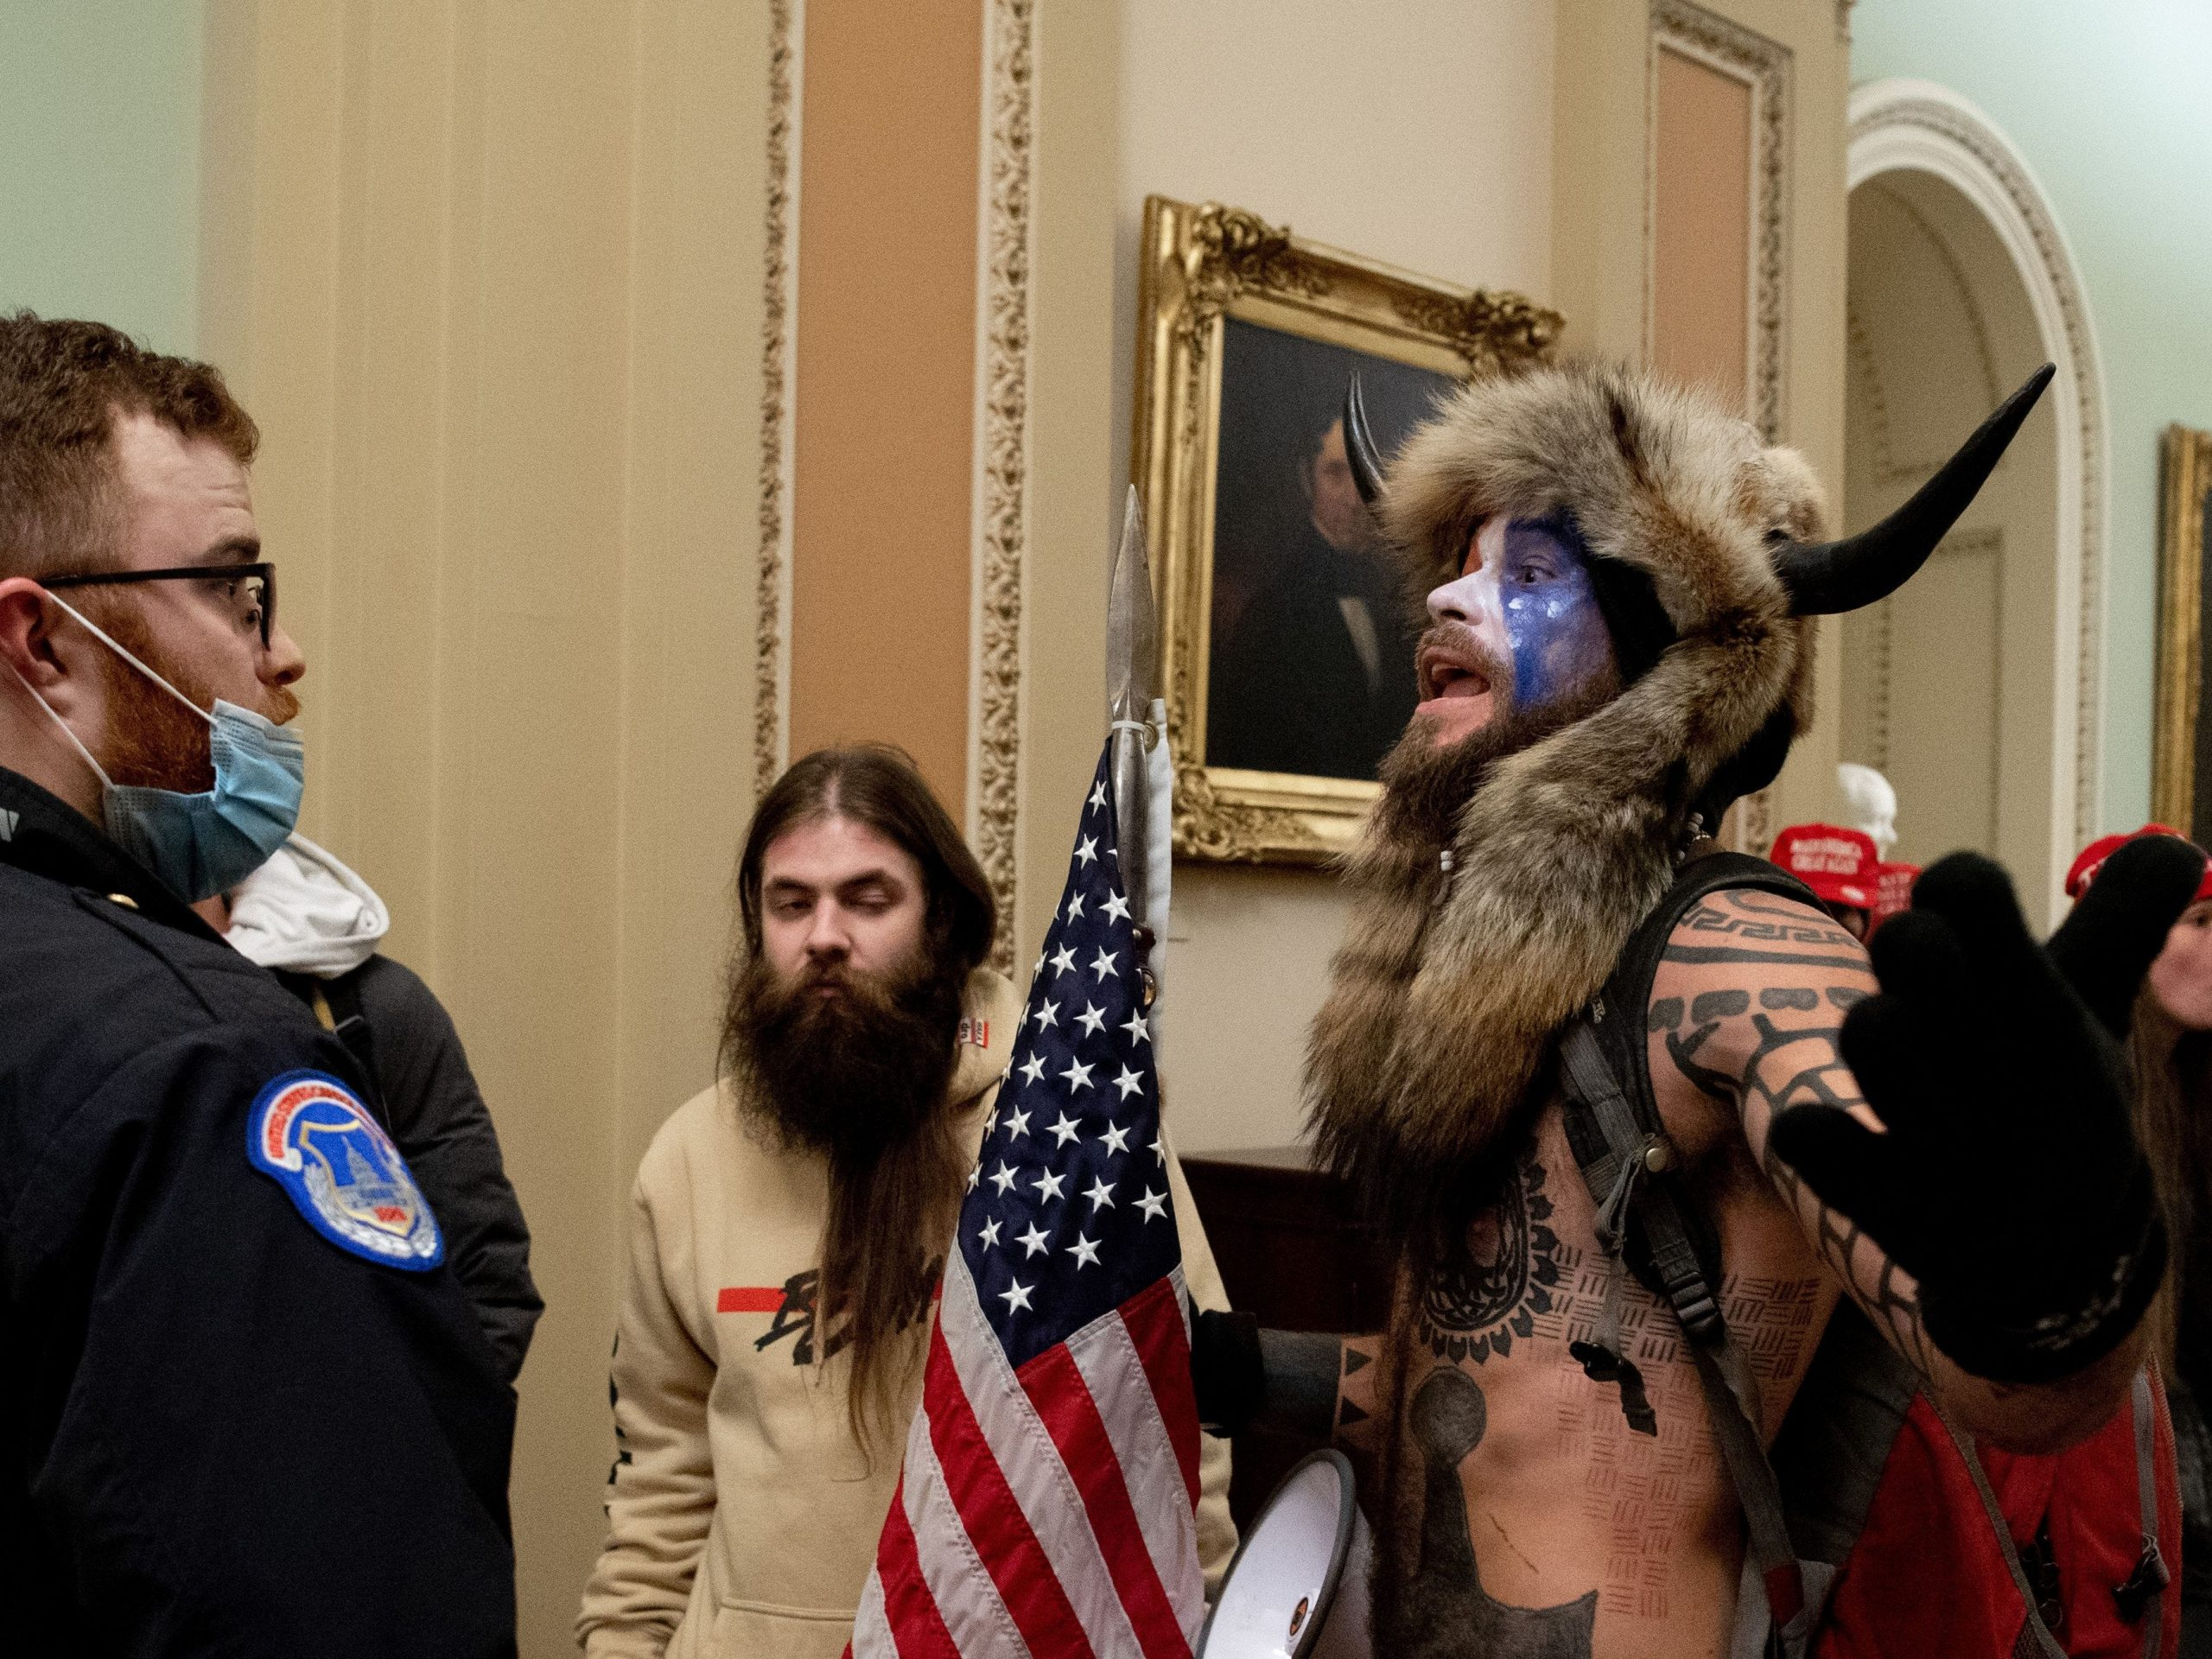 Lawyer for the 'Q Shaman' who stormed the Capitol in a fur headdress with horns says his consumer feels 'duped' after Trump did not pardon him